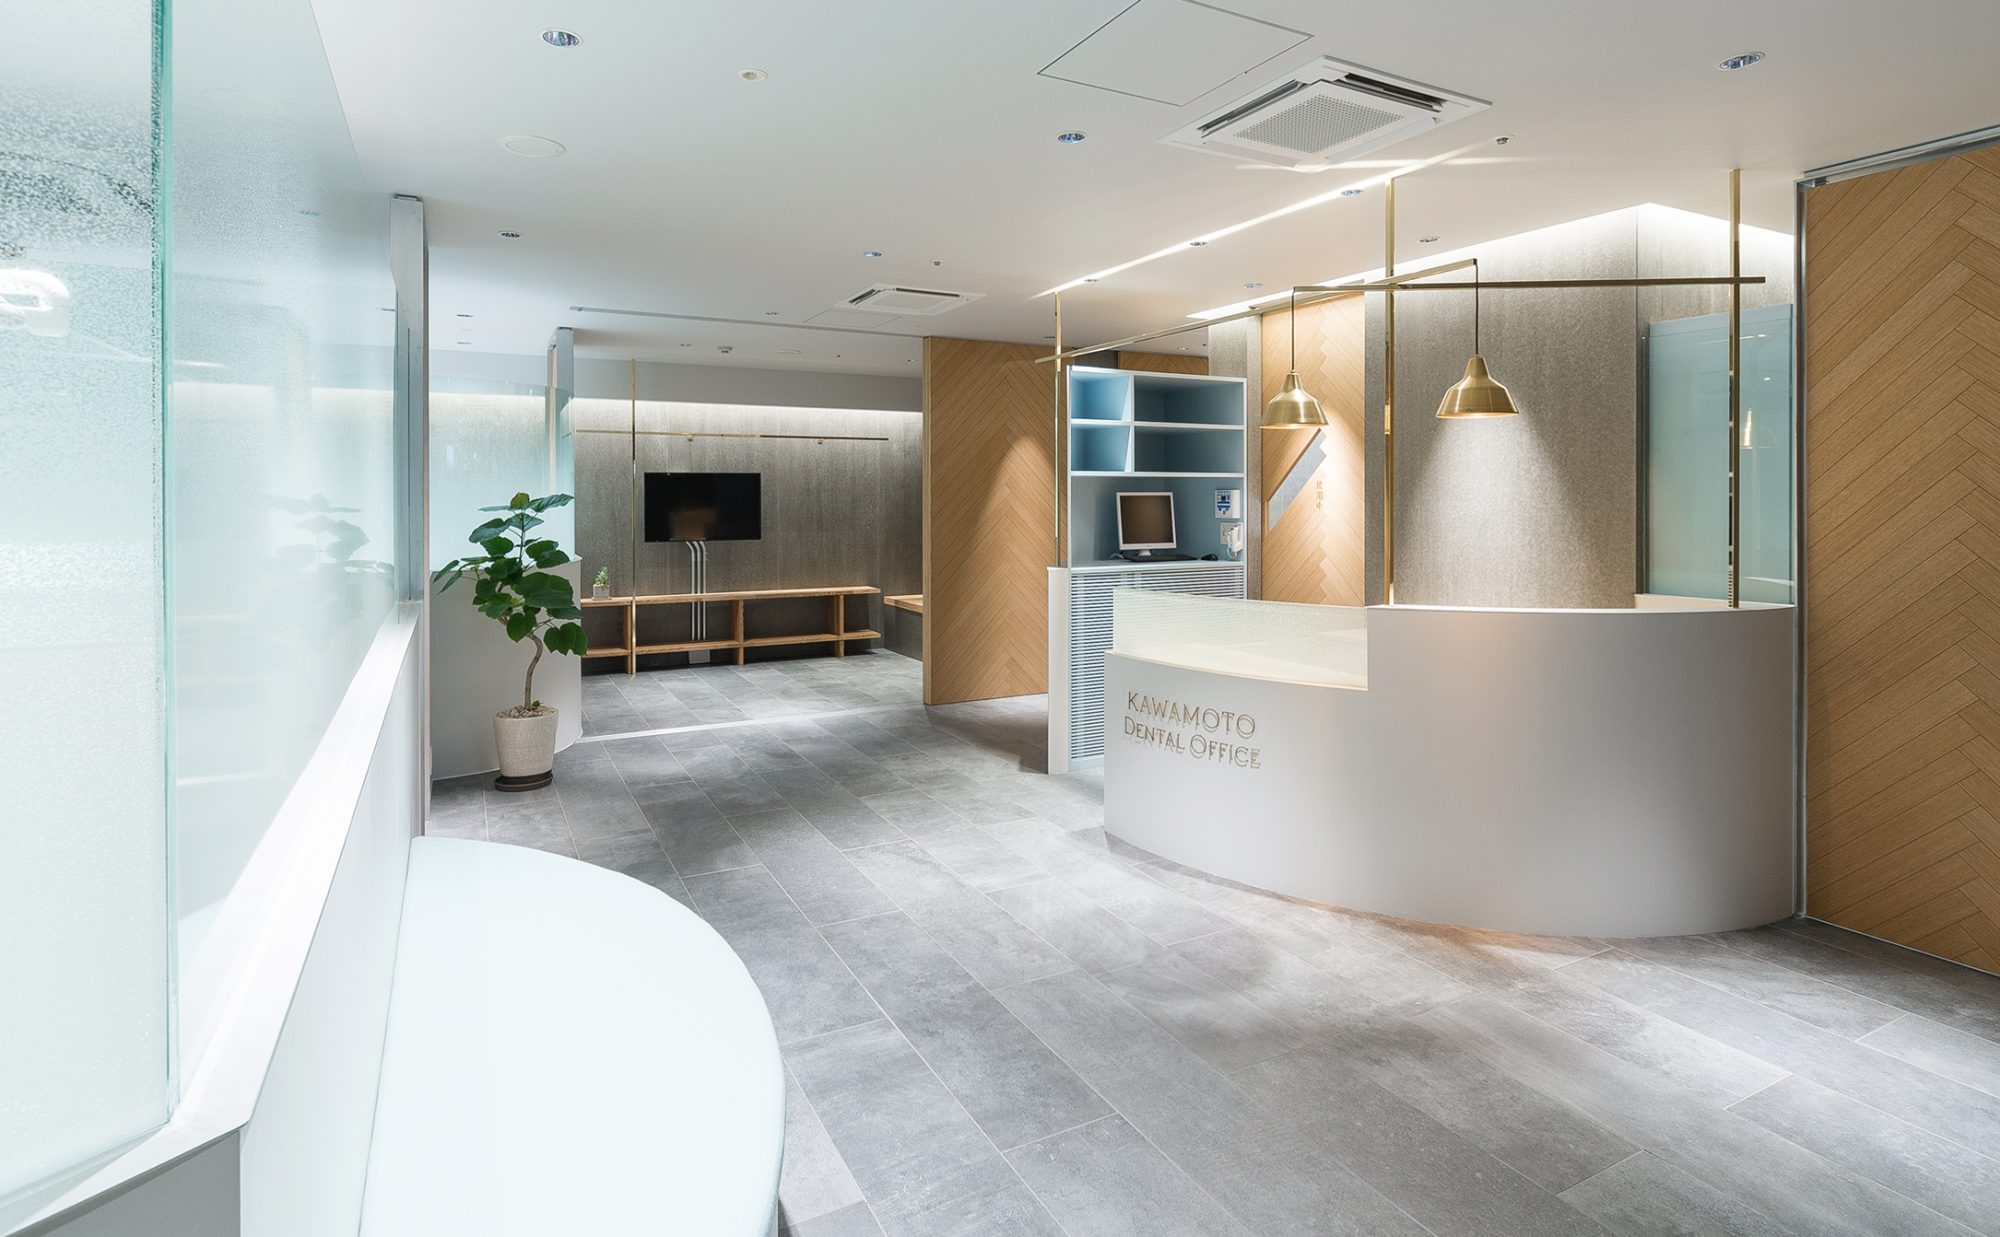 Kawamoto Dental Office